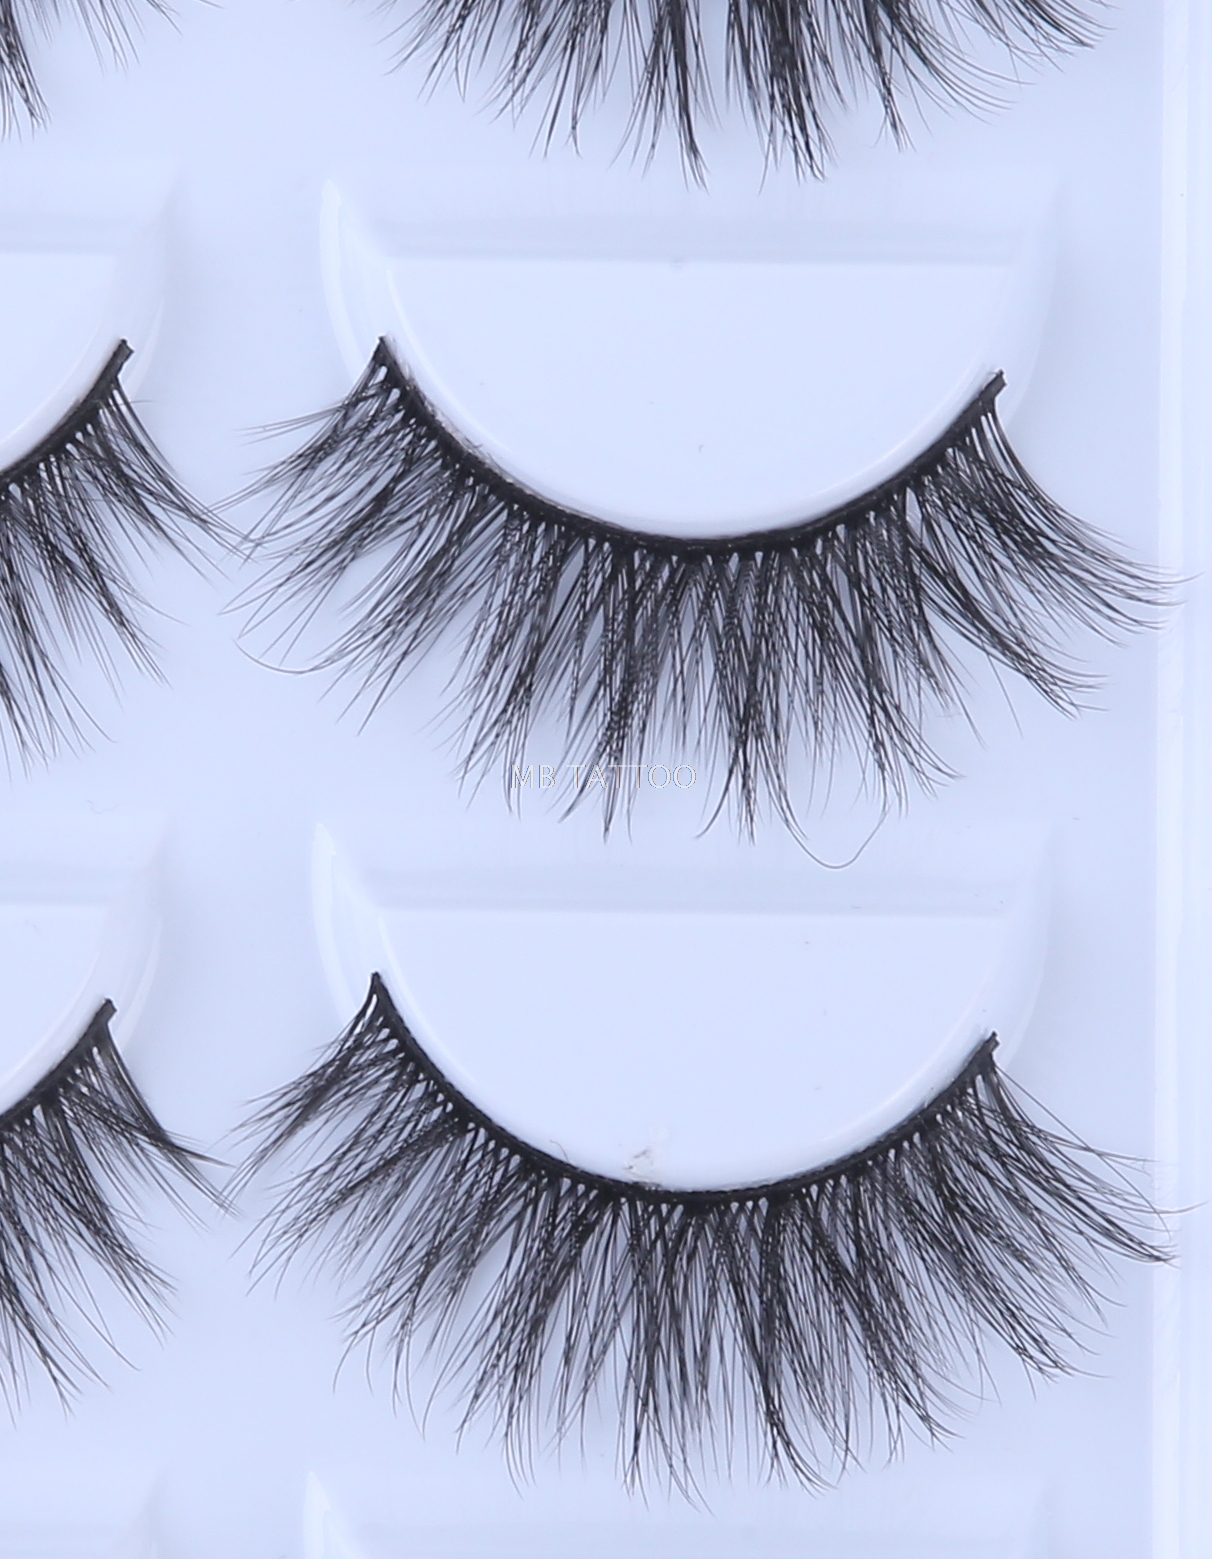 HTB1cXUUQ3HqK1RjSZFEq6AGMXXaW New 3D 5 Pairs Mink Eyelashes extension make up natural Long false eyelashes fake eye Lashes mink Makeup wholesale Lashes